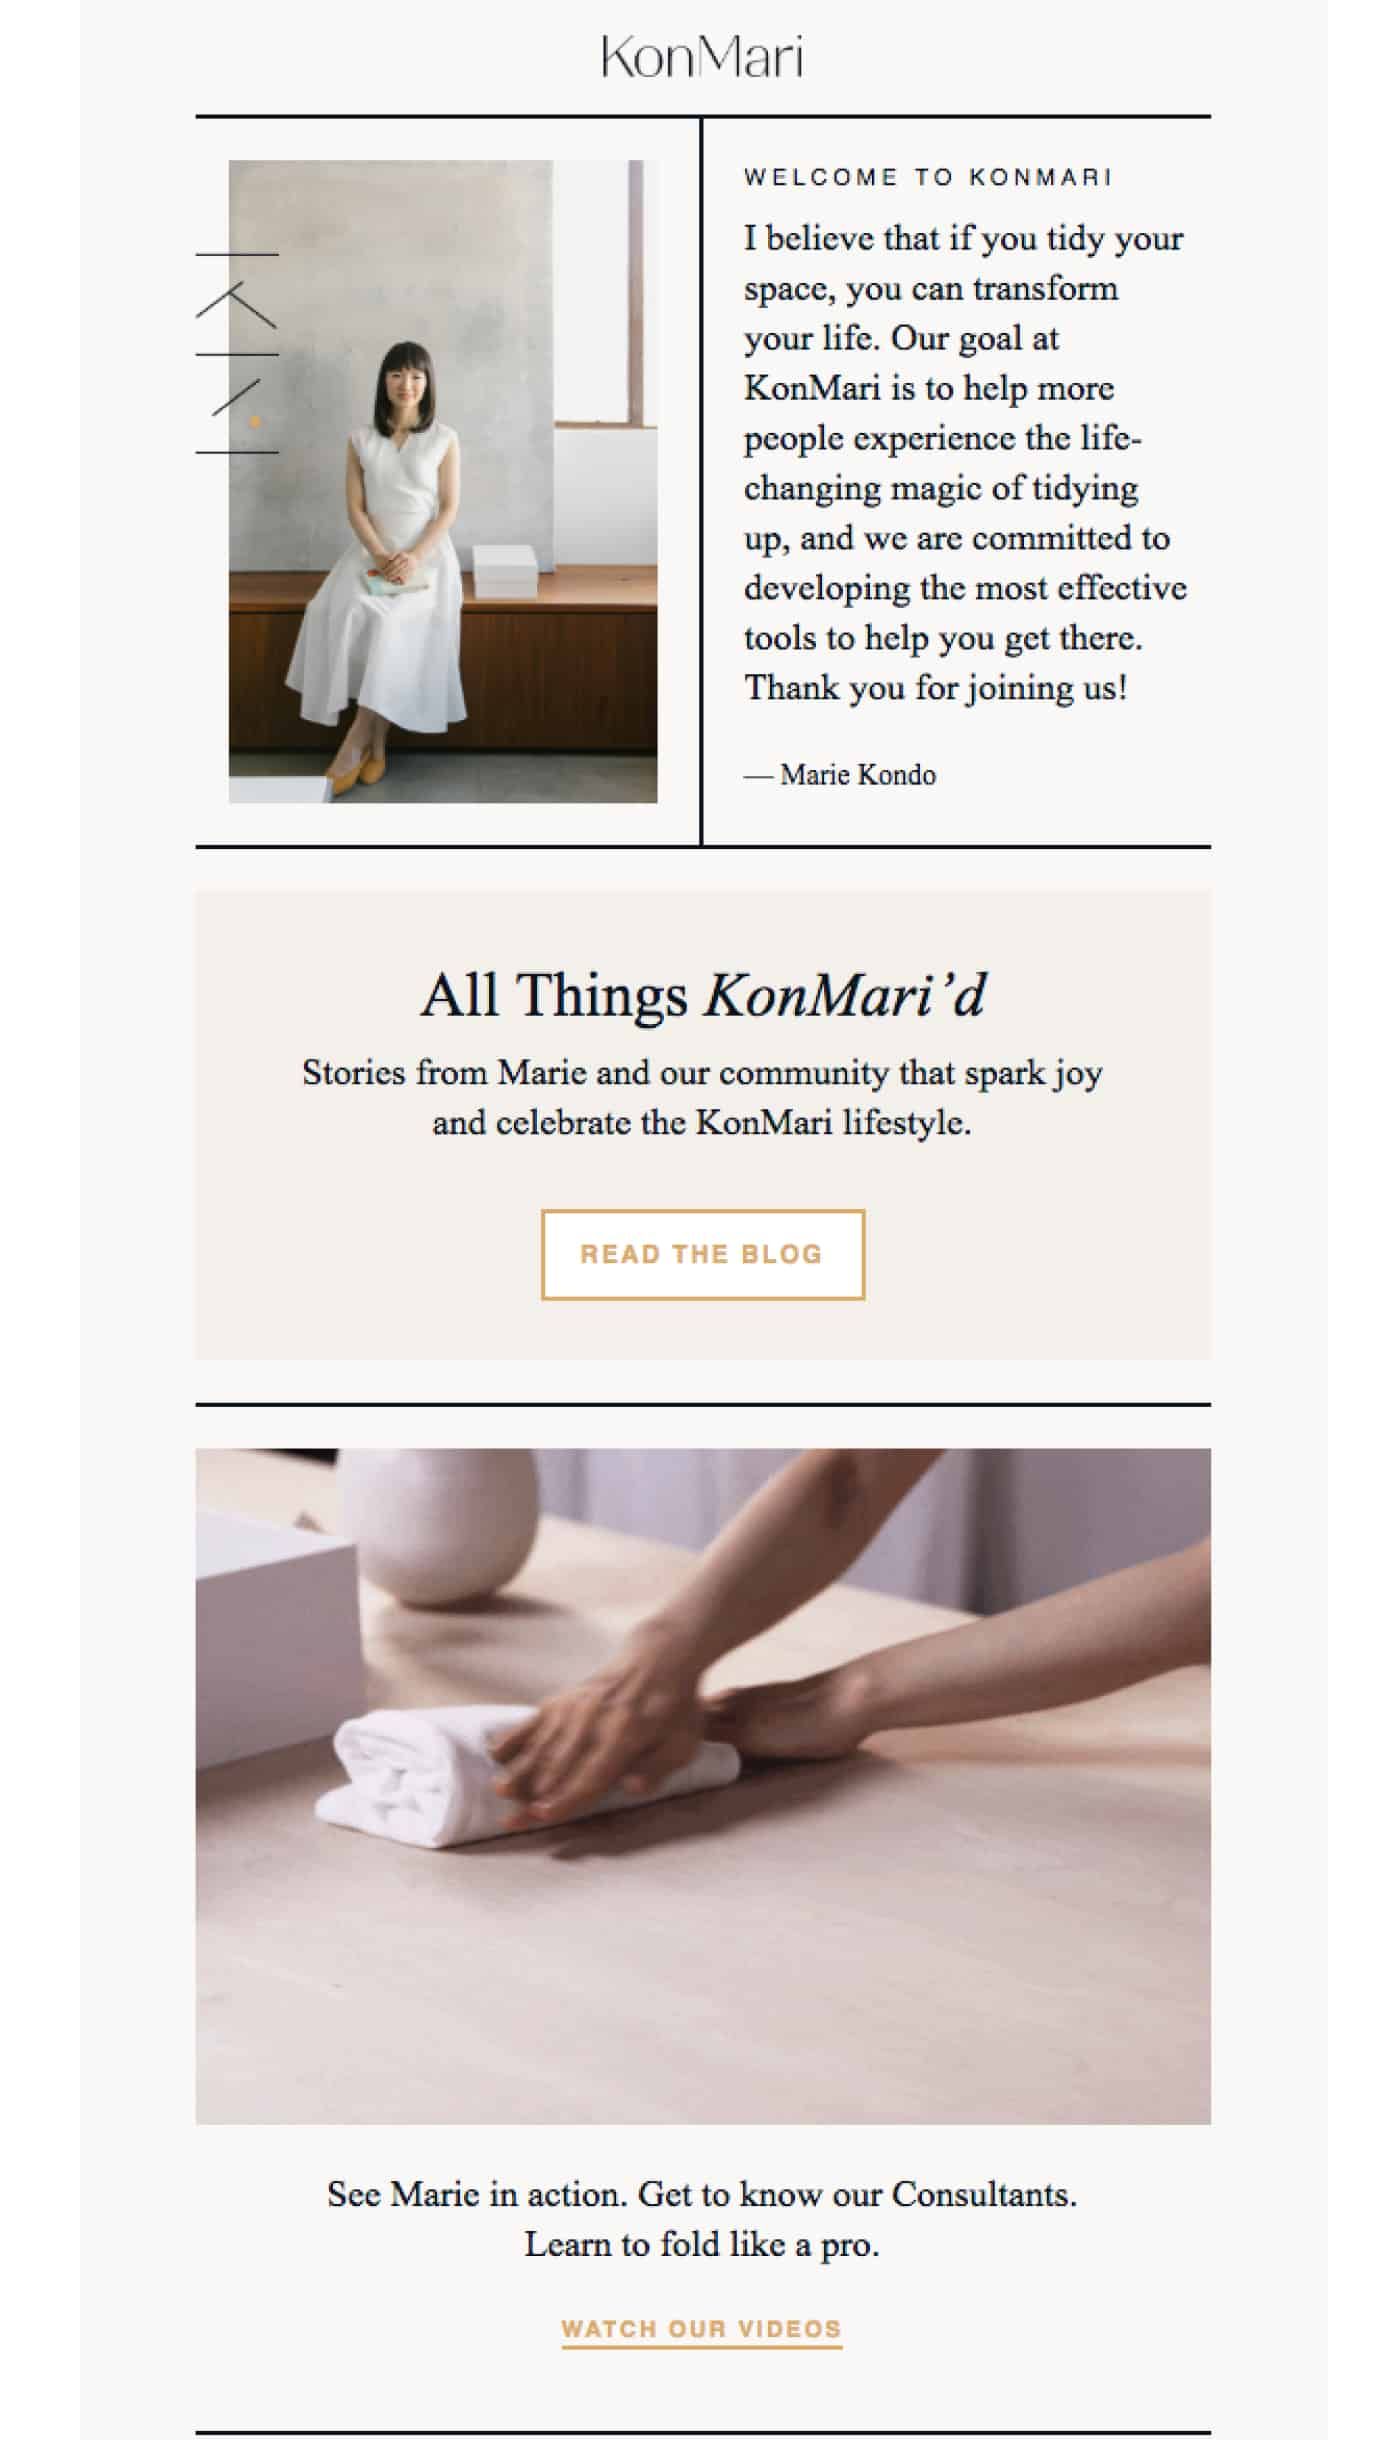 KonMari newsletter confirmation email